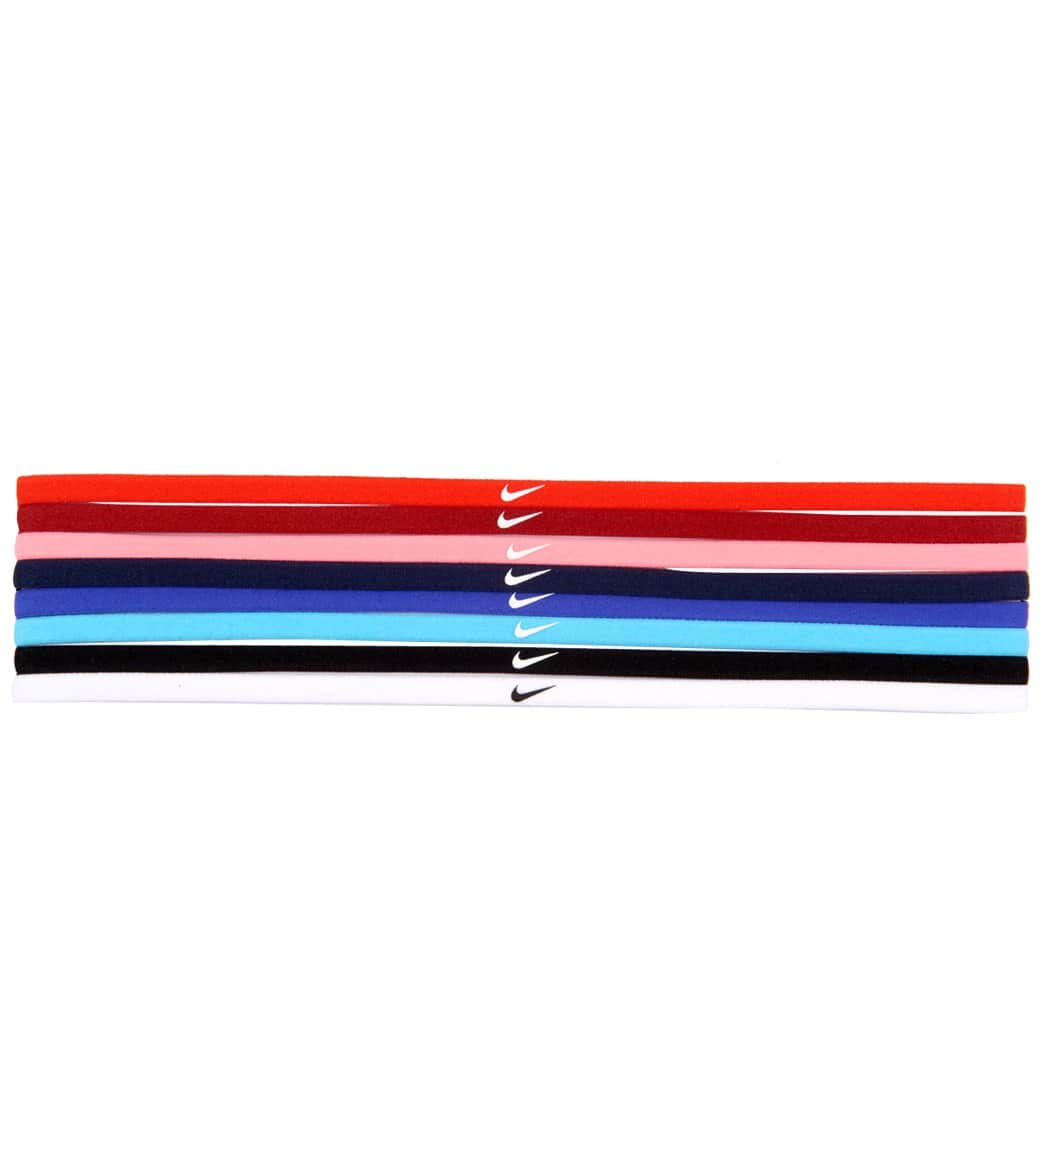 Nike Skinny Hairbands (8 Pack) at SwimOutlet.com 80929e696b4e